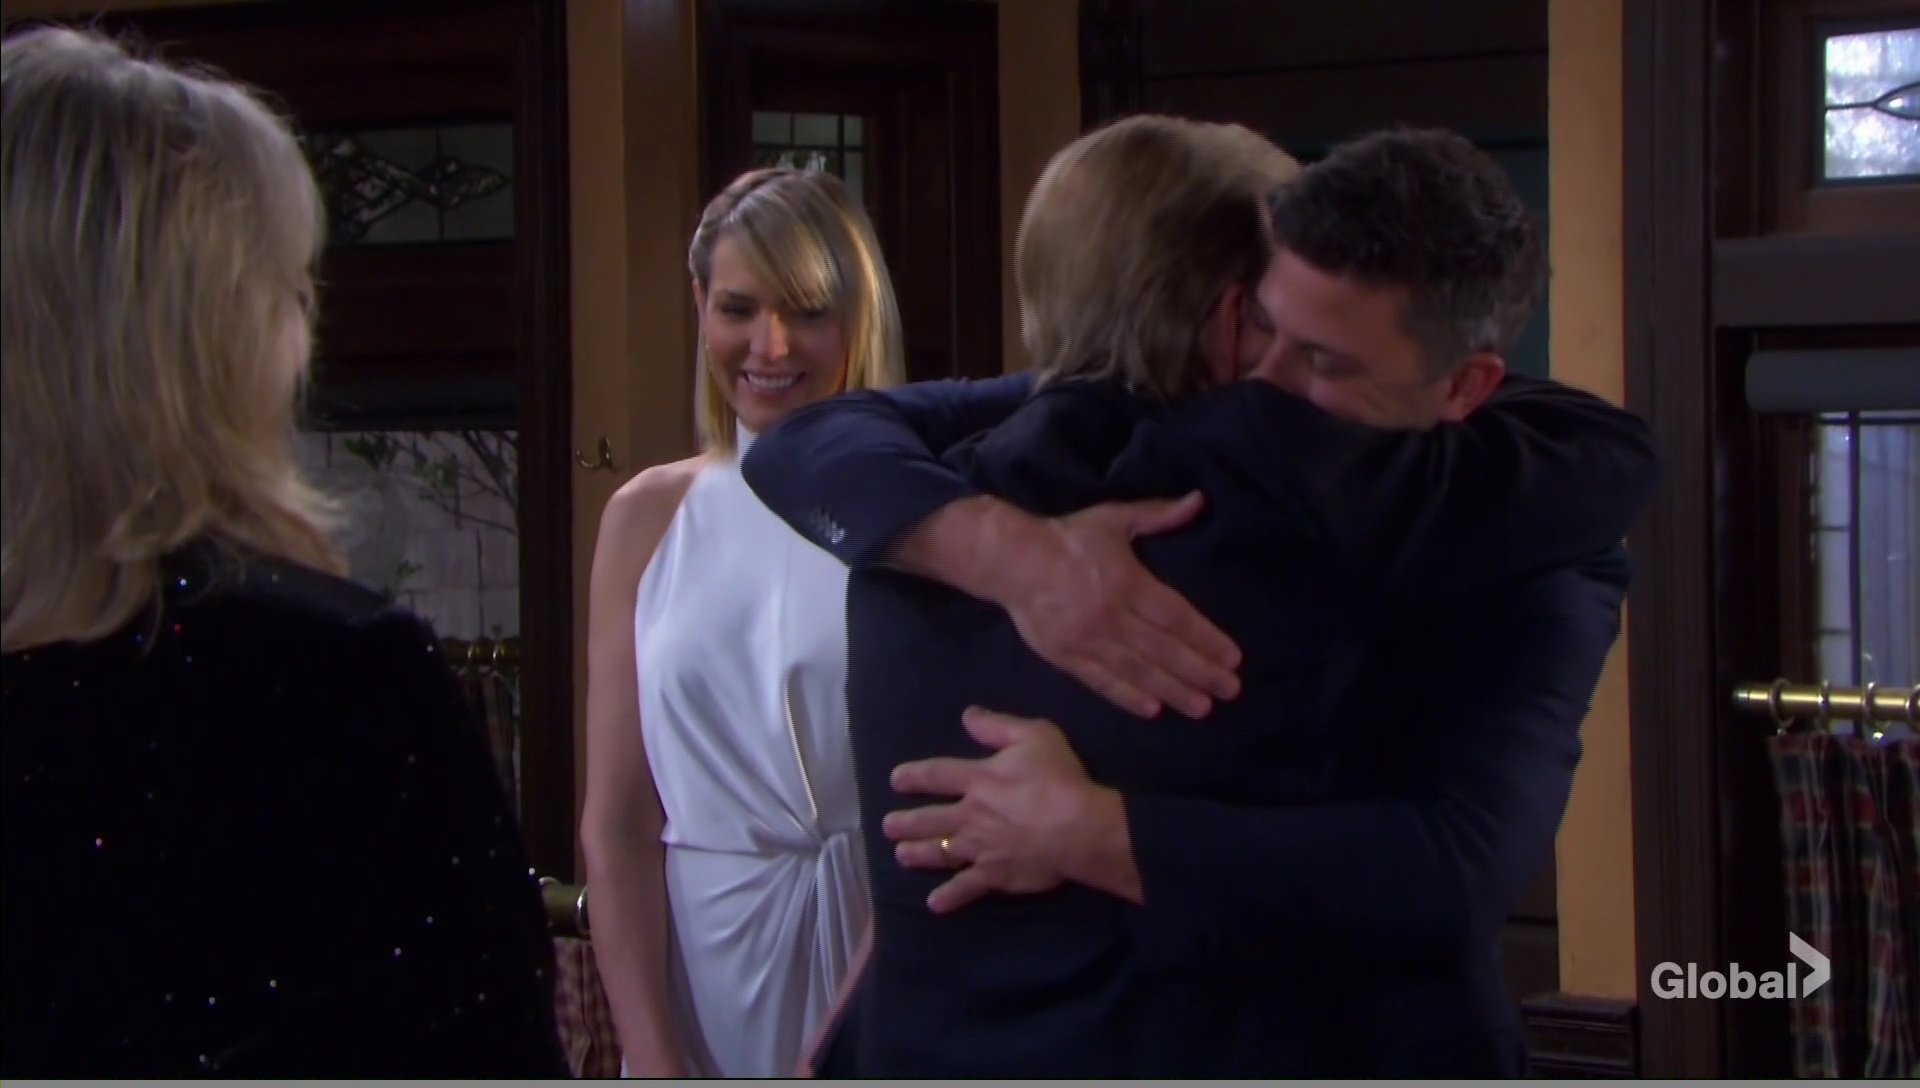 eric hug family days of our lives